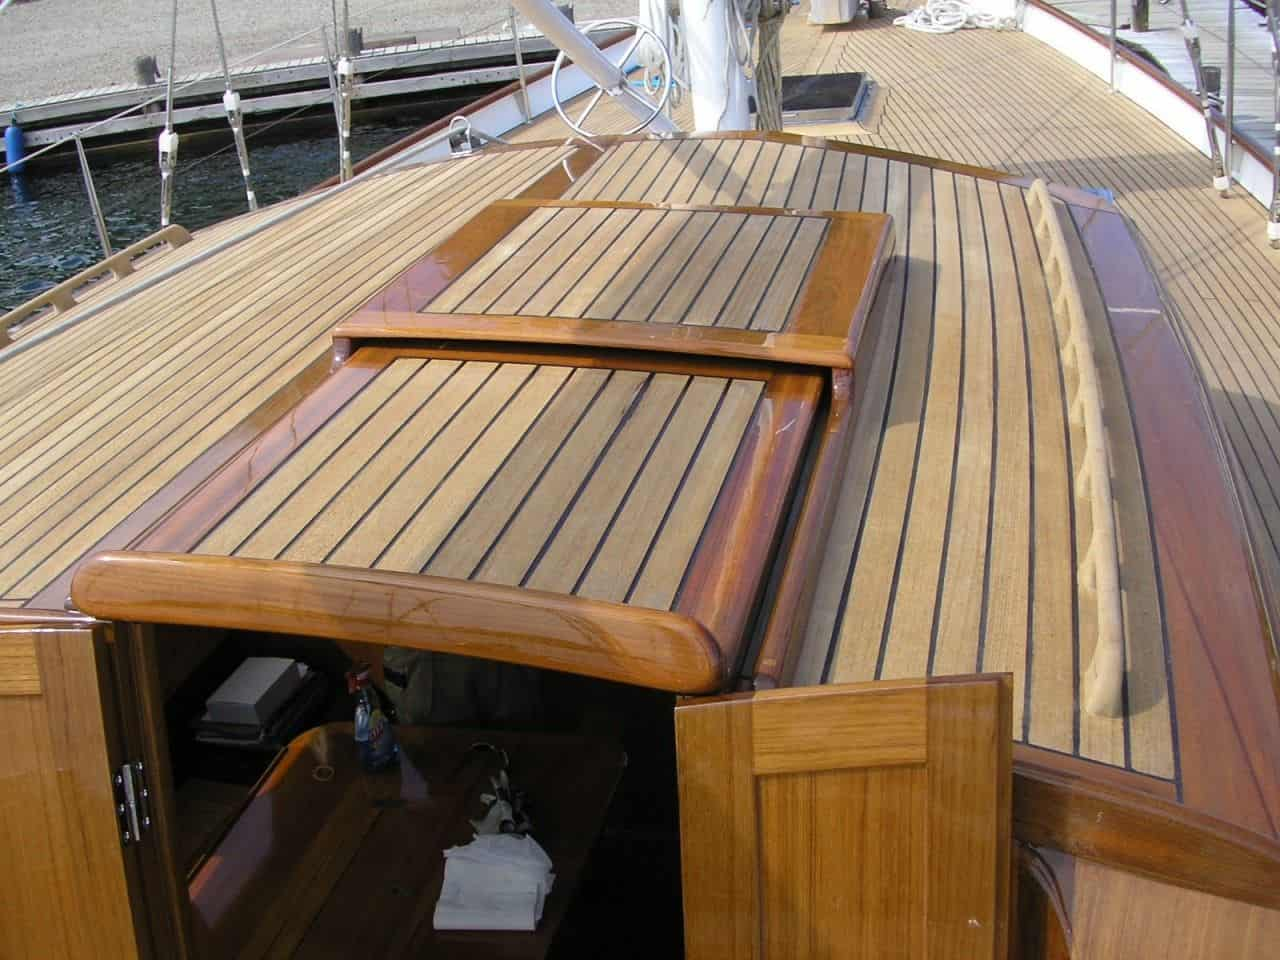 Teak Decks and Sikaflex, 5200 etc - Storer Boat Plans in Wood and Plywood